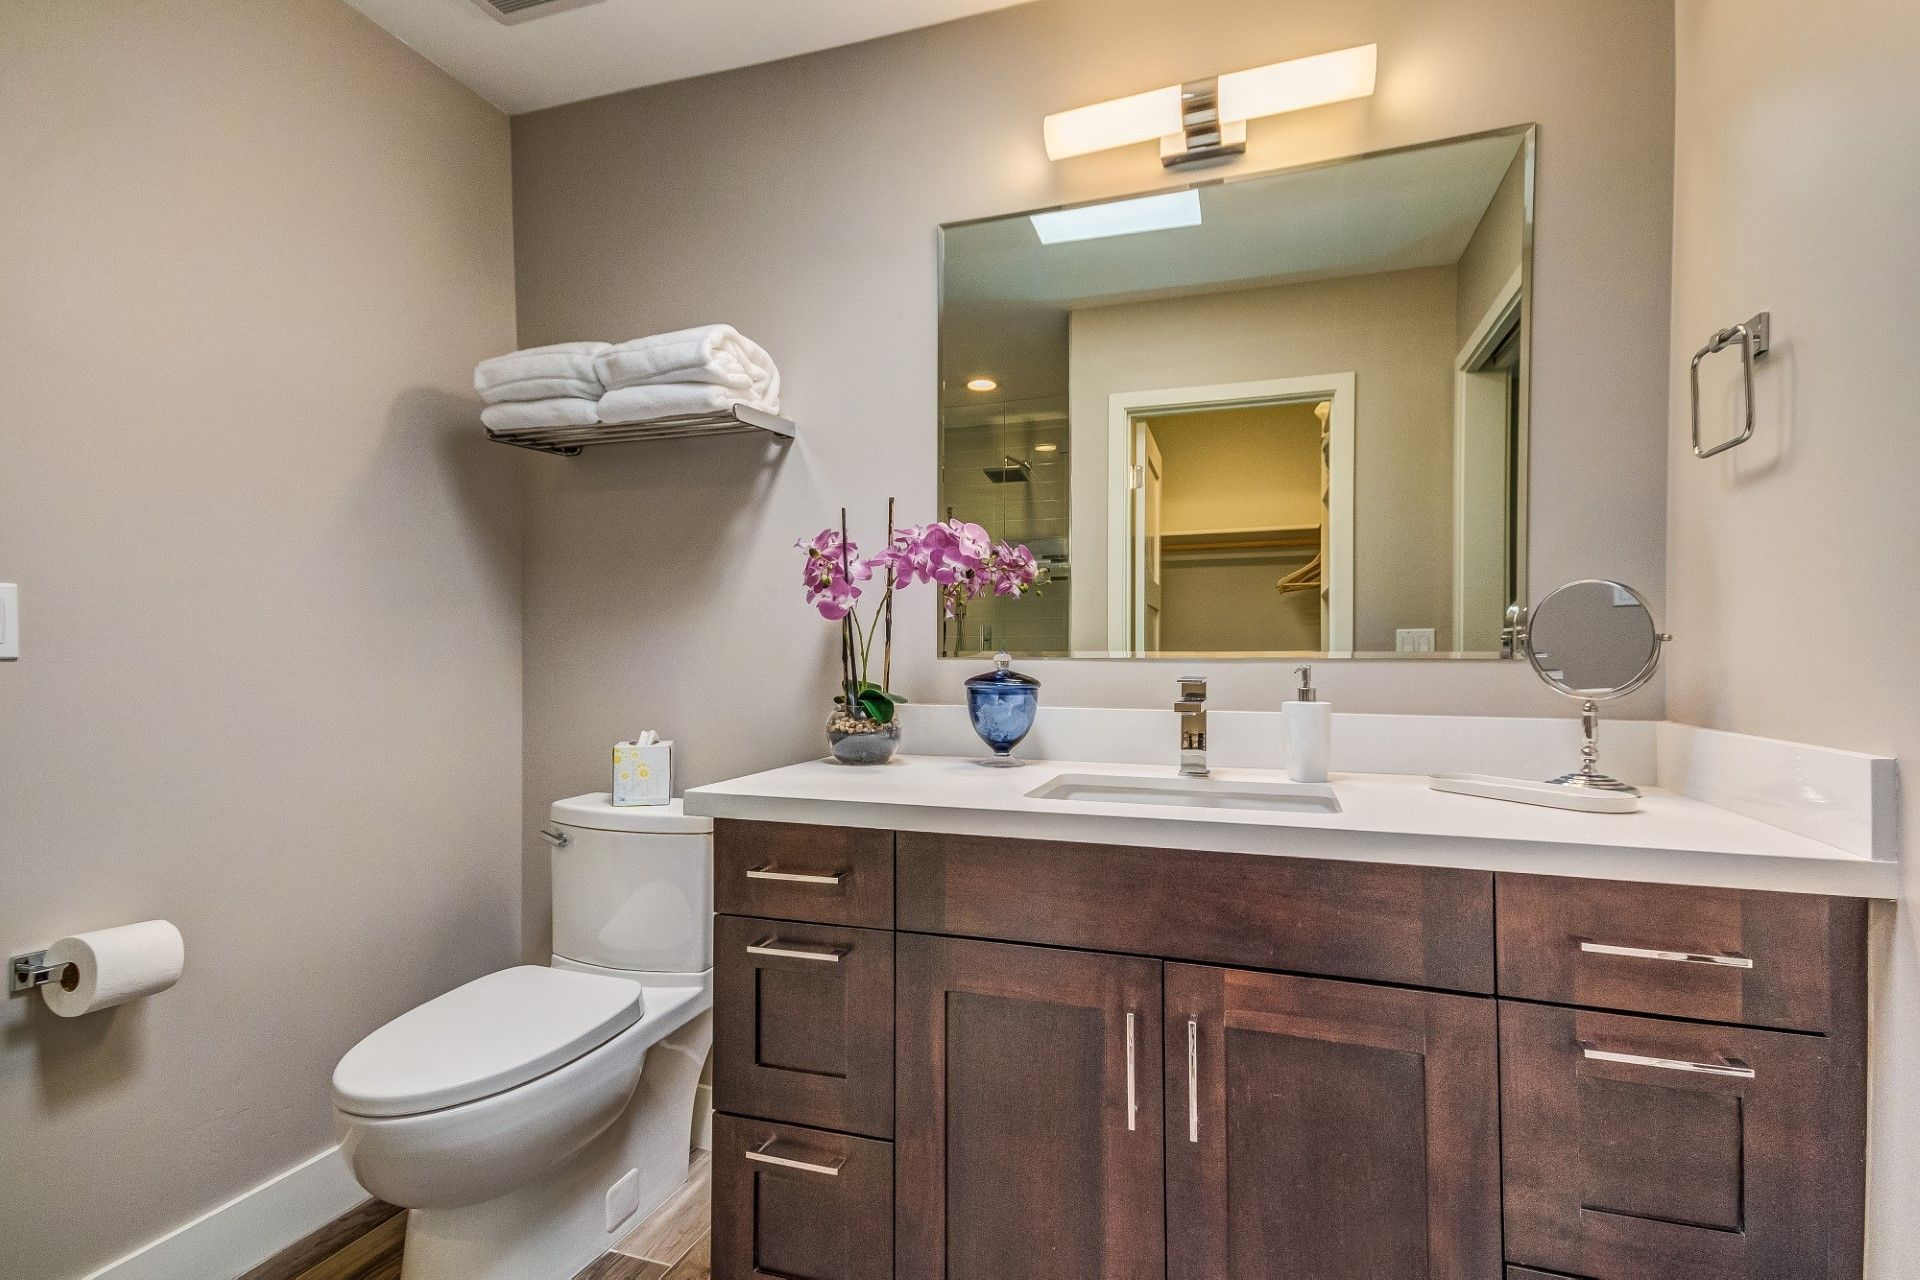 Here In The Guest Bathroom At San Carlos Has The Same Stained Cabinets That Match The Kitchen Is Kitchen Remodeling Companies Staining Cabinets Modern Hardware